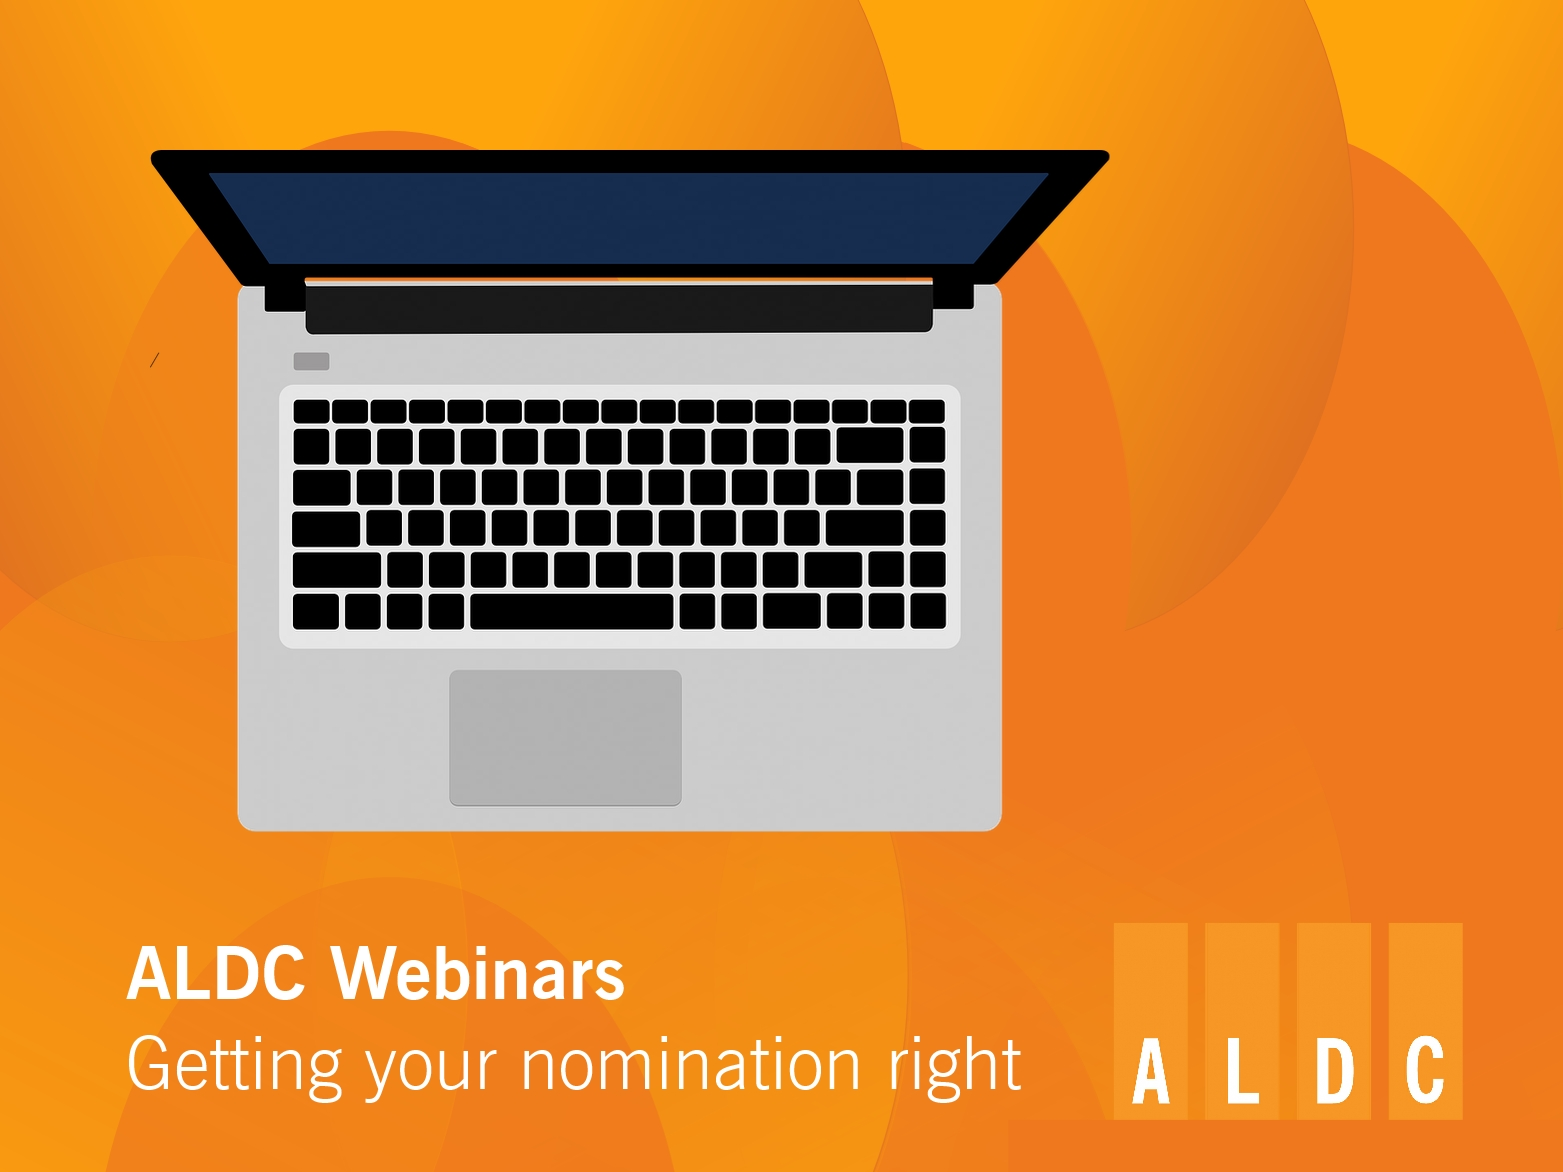 Sign up for our webinar on nominations